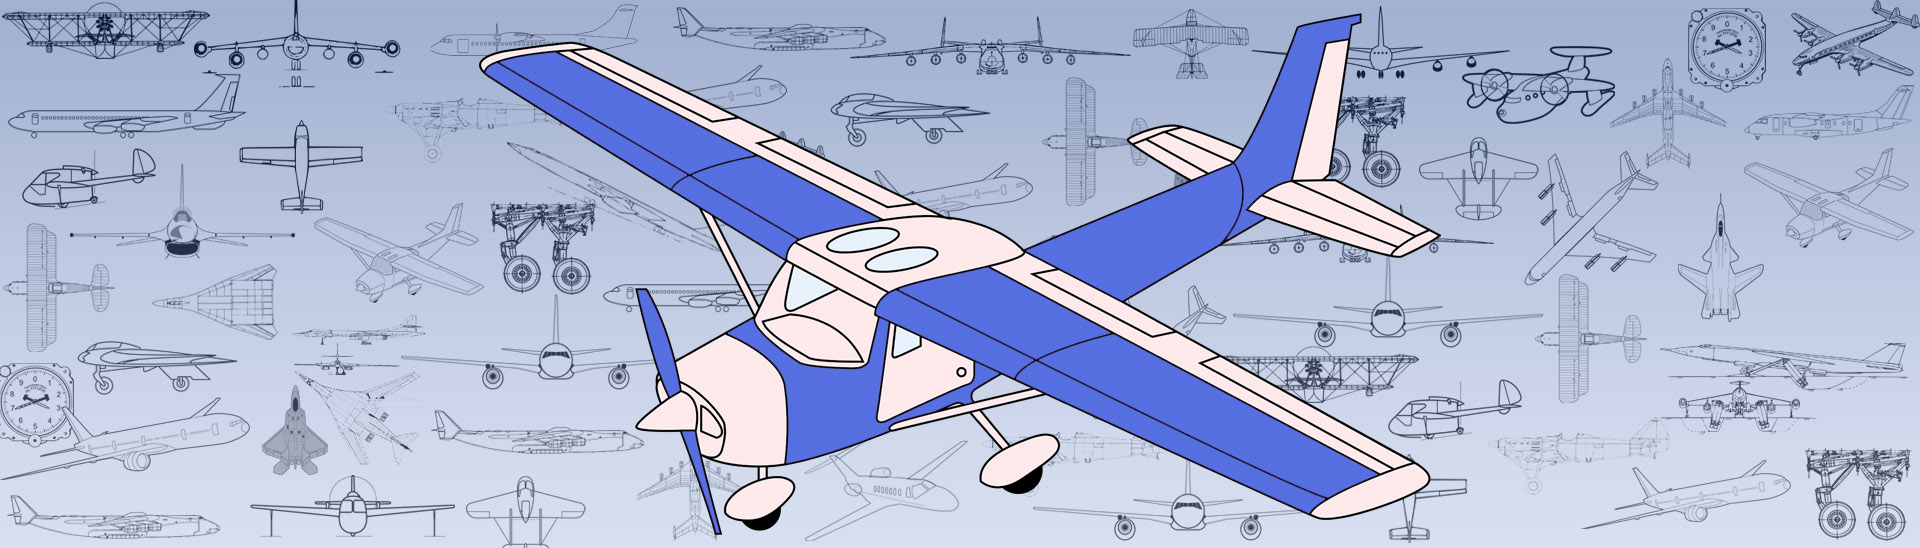 The main Structure of airplanes